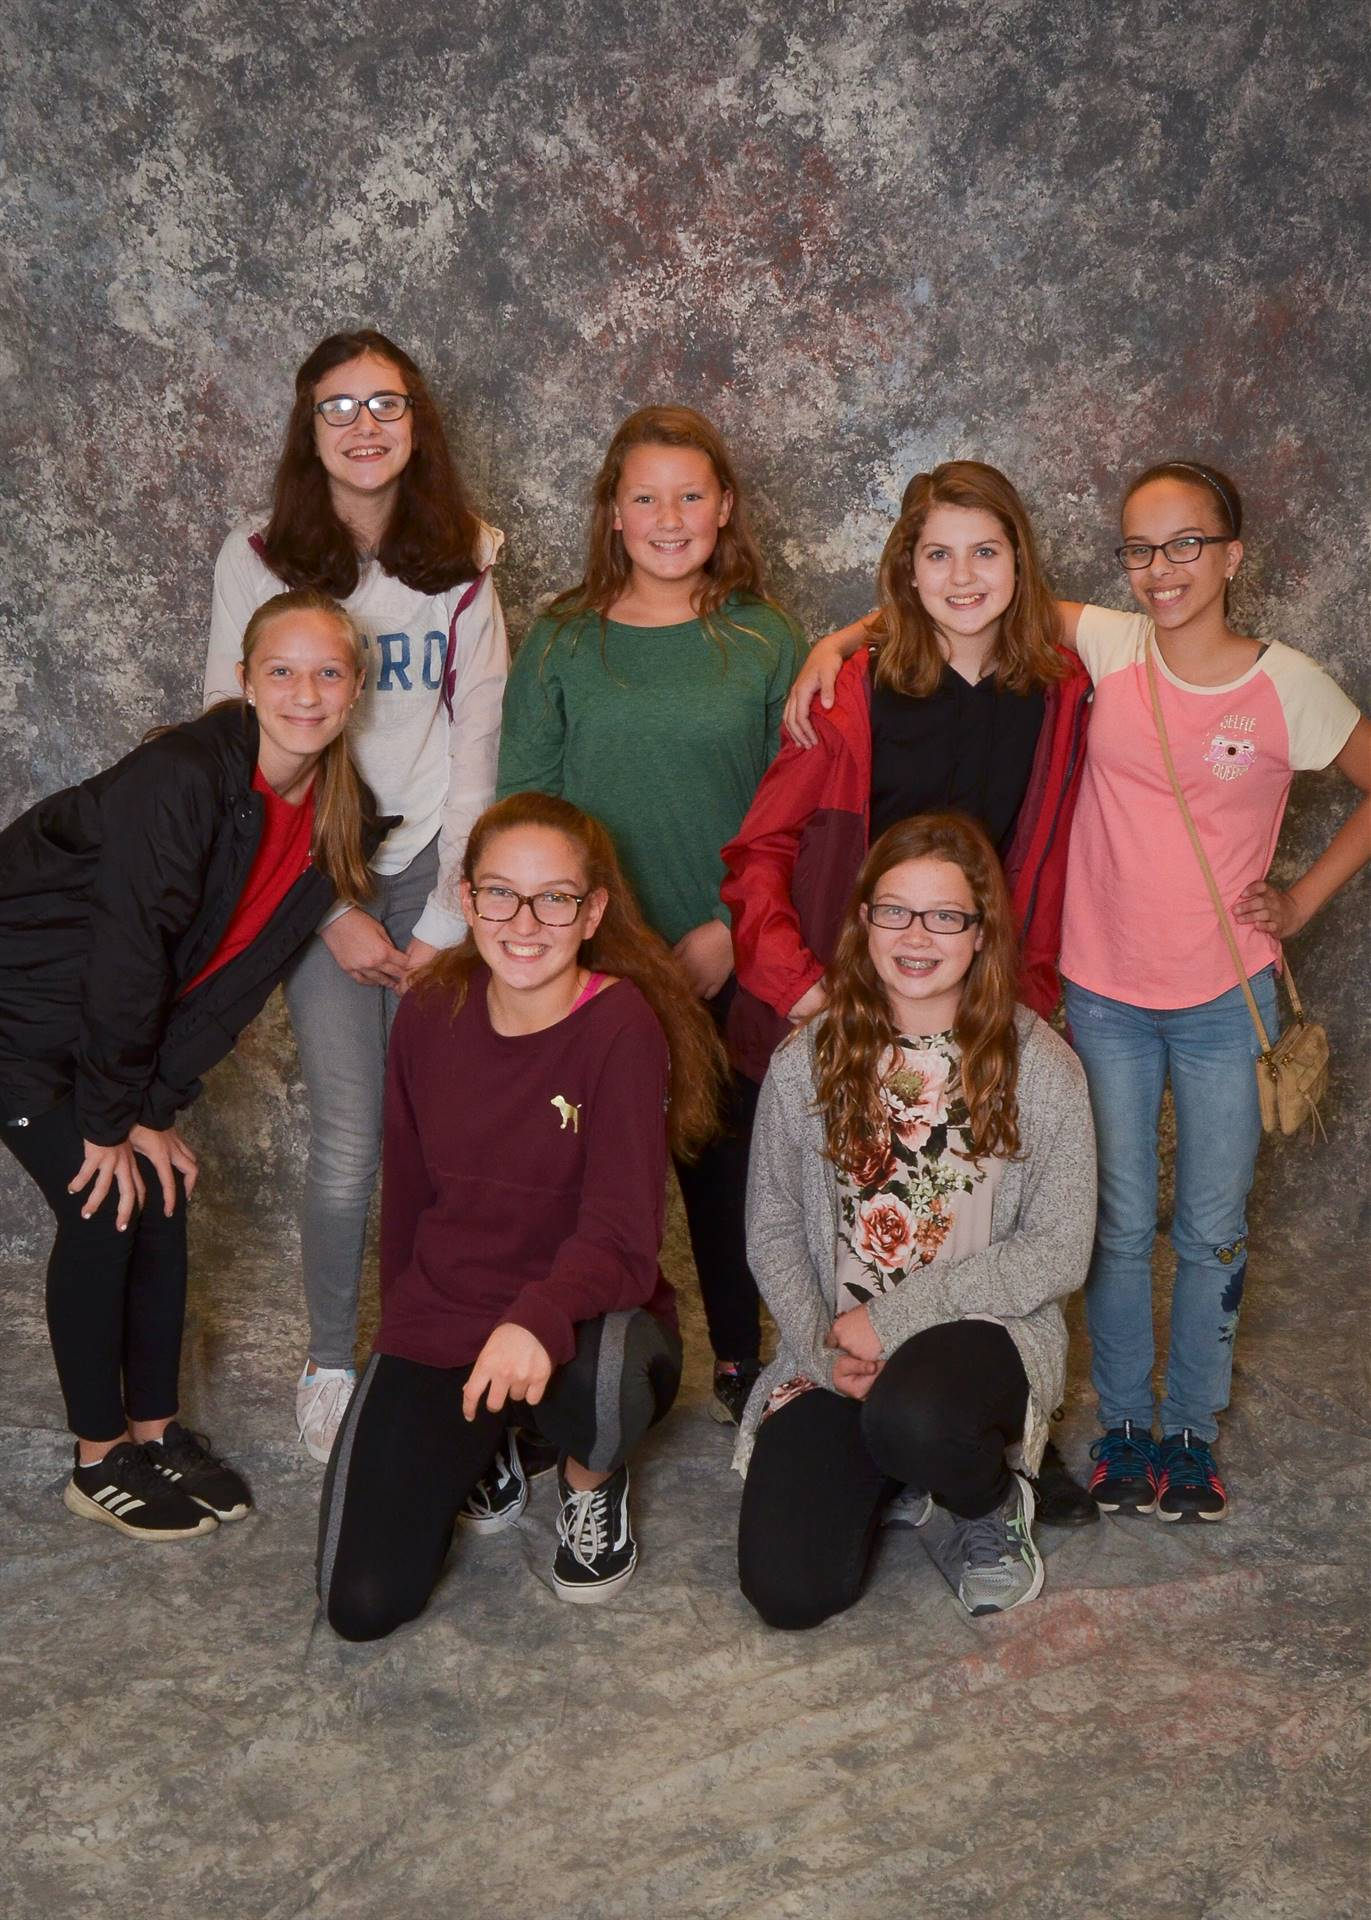 Seven Girls in a Buddy photo